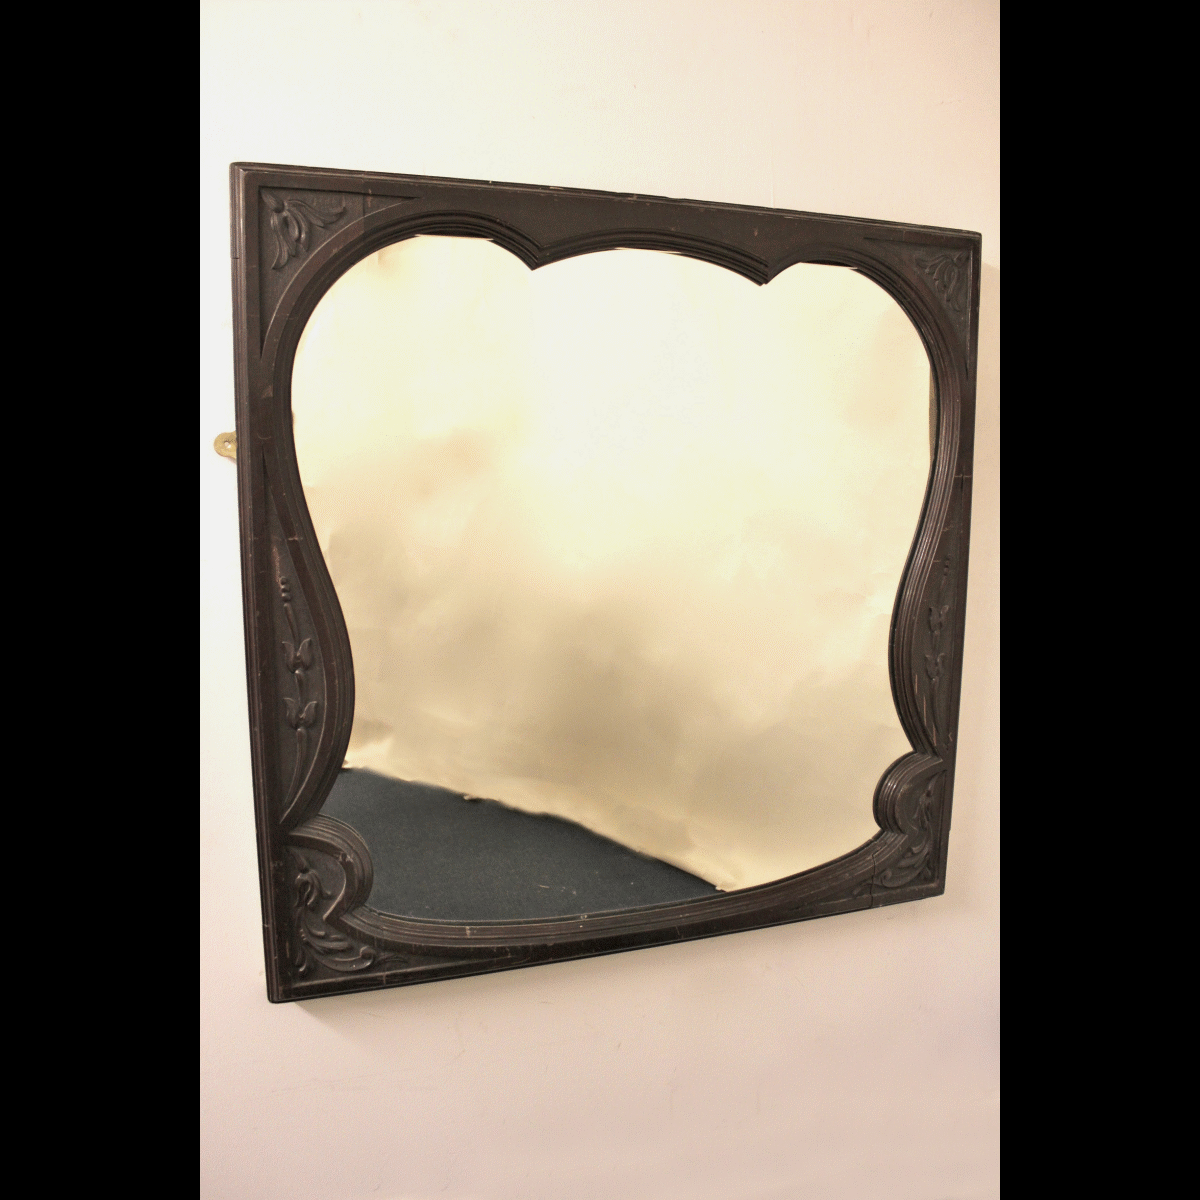 0070053 mirror x1 63cm wide by 91cm long stockyard north for Long wide mirror